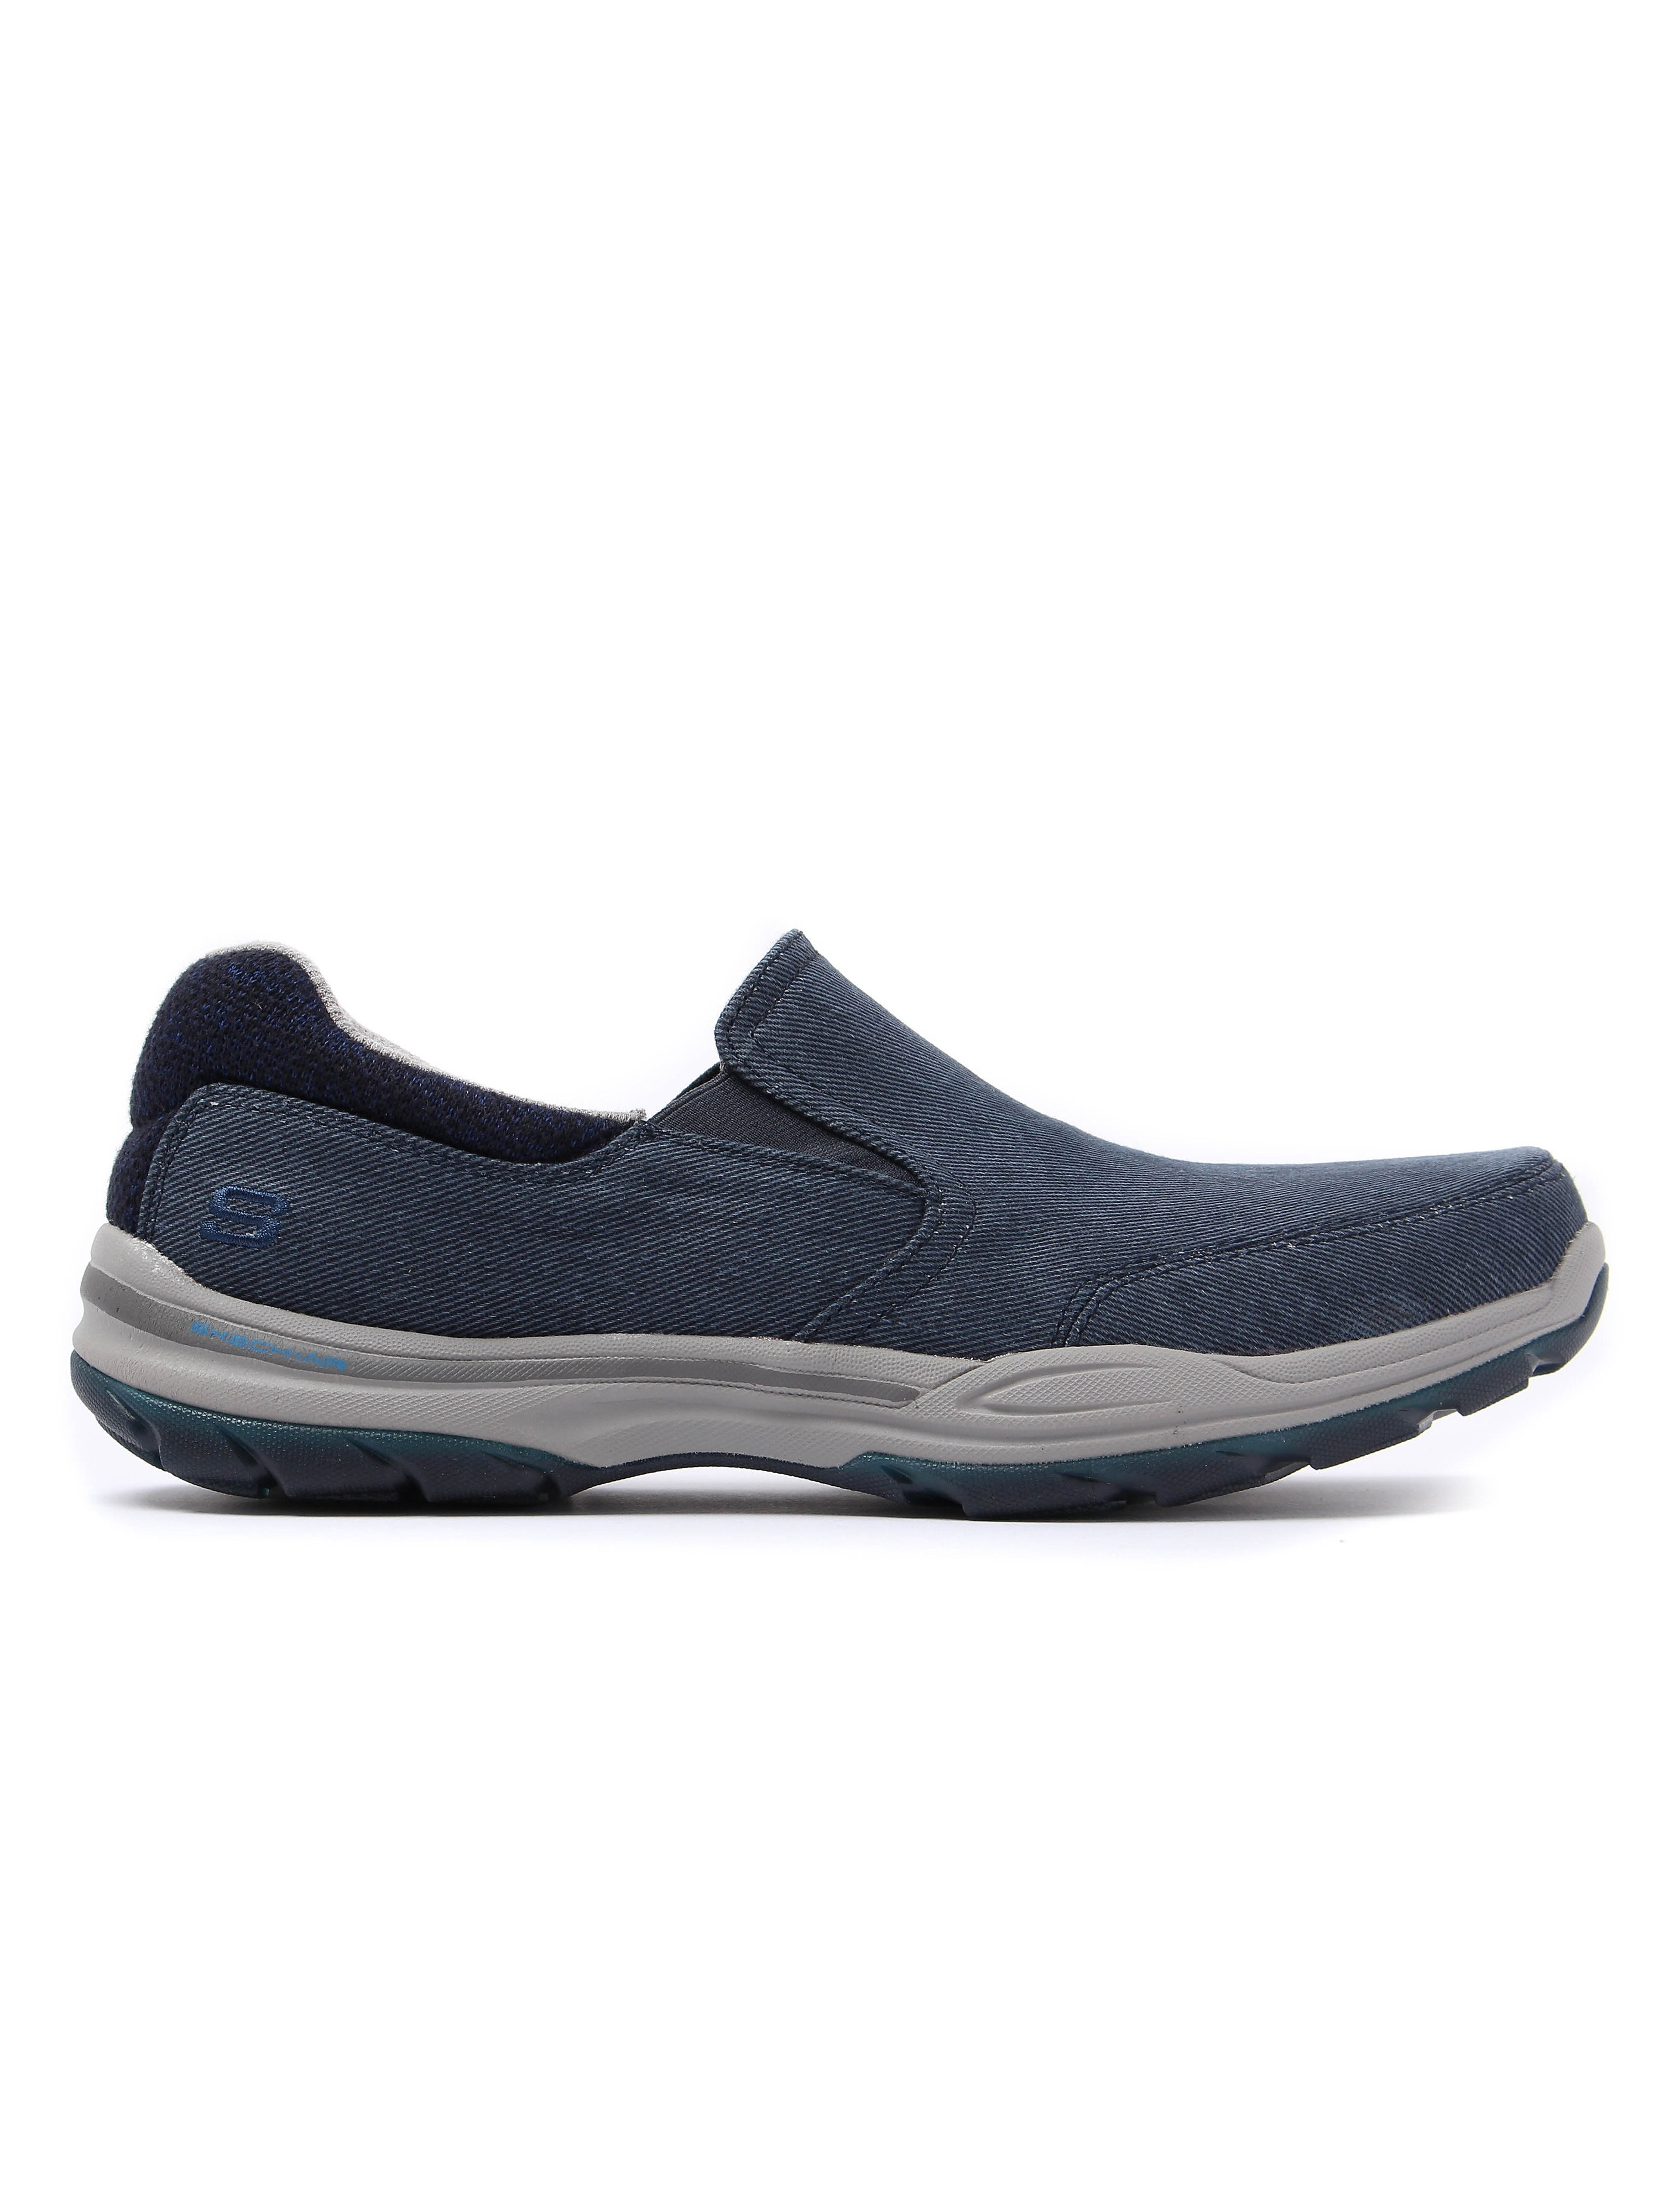 Skechers Men's Elment Campo Trainers - Navy